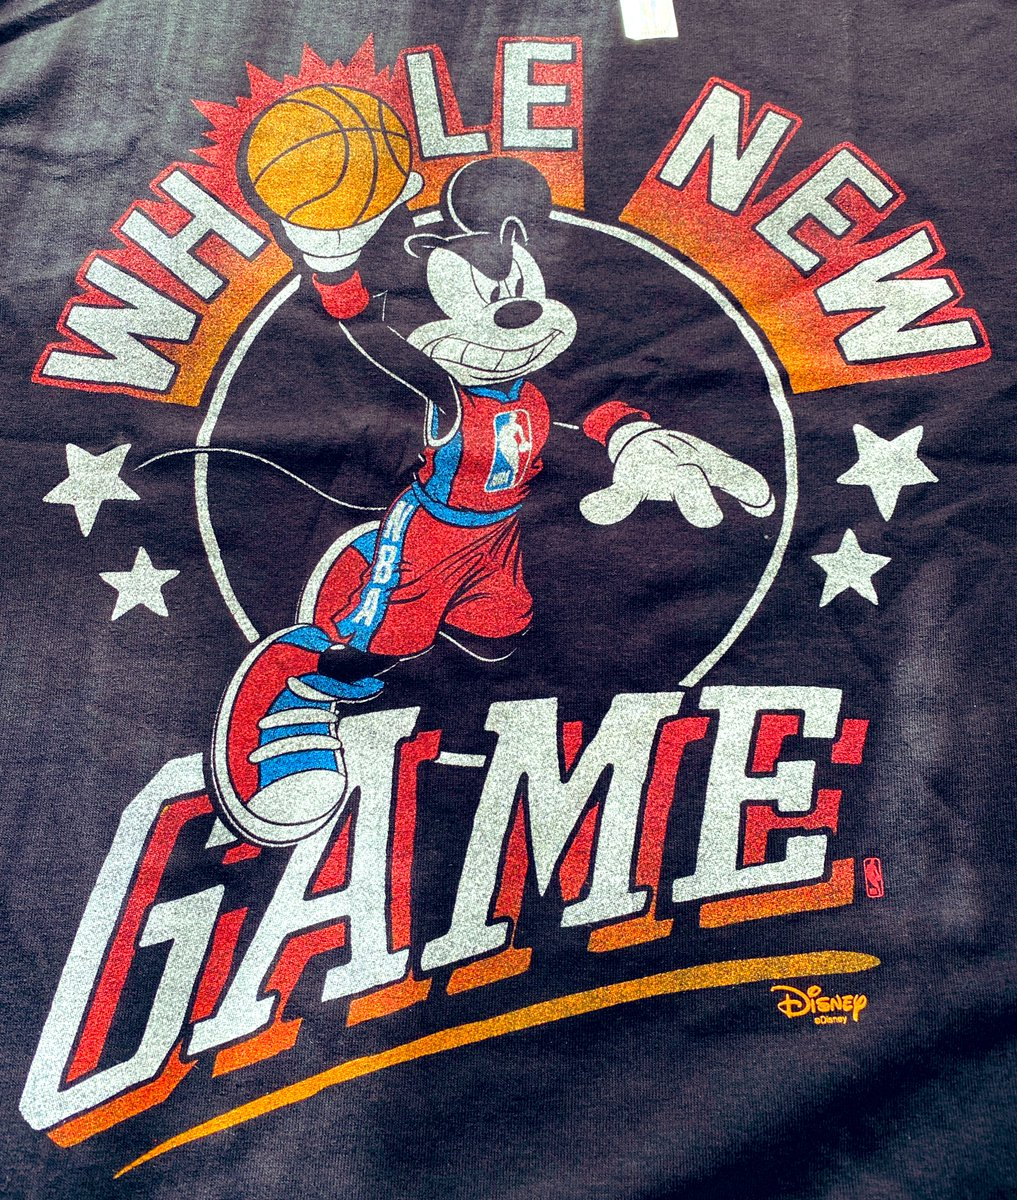 ミッキーさんの歯並び良過ぎ。#nba #wholenewgame #mickeymouse https://t.co/YxzmrUoM7h